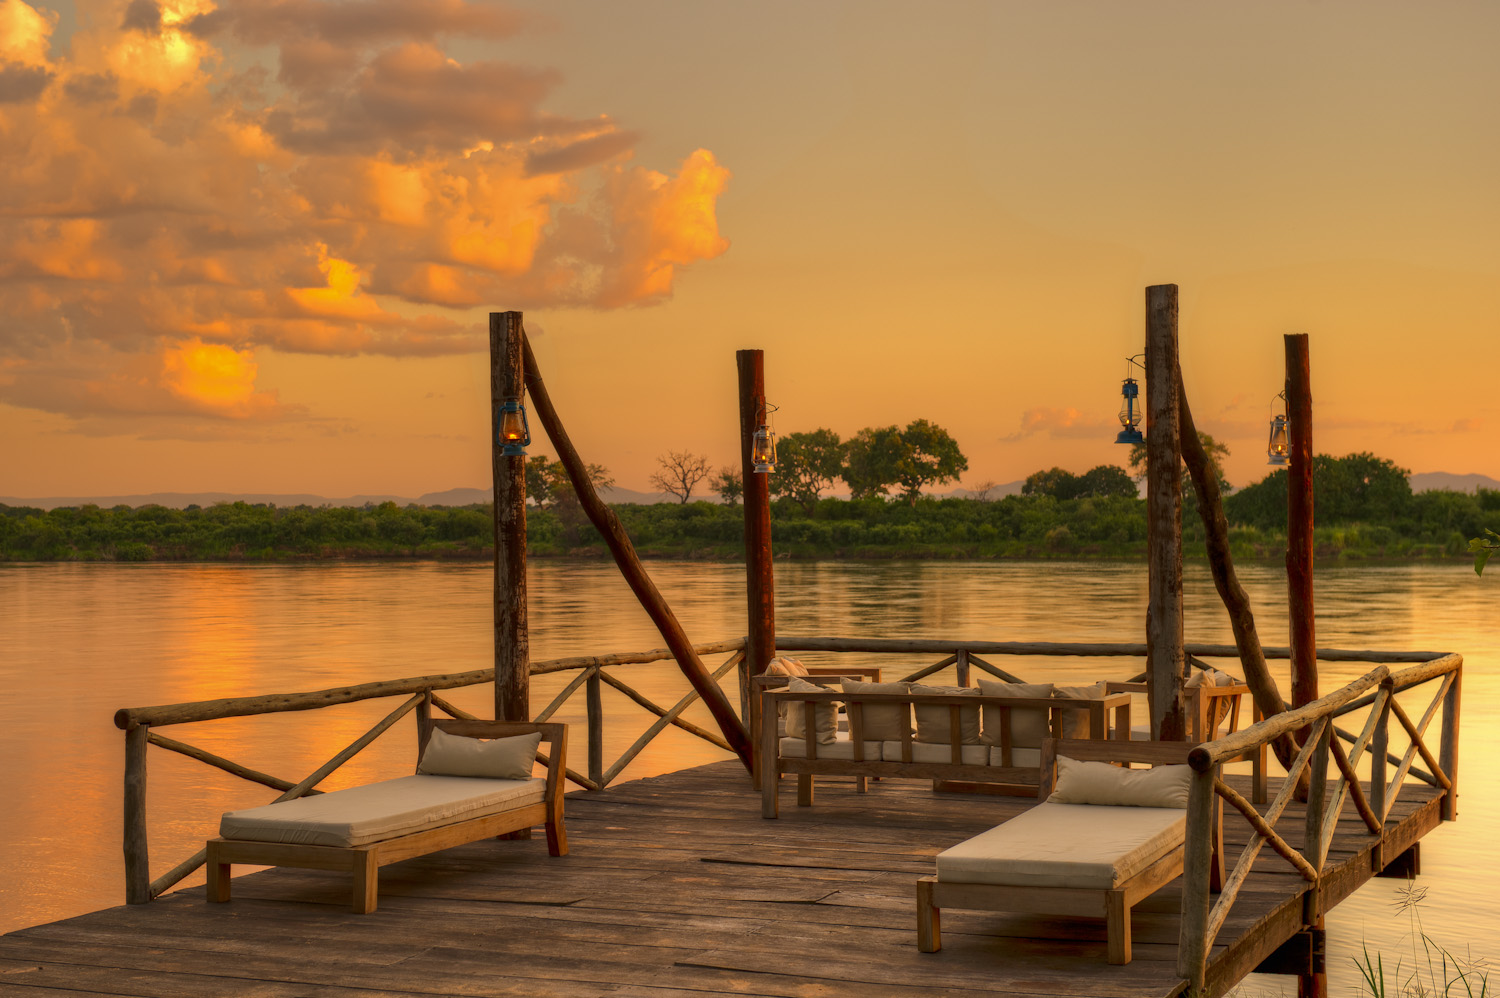 Kanyemba Lodge Lower Zambezi Zambia